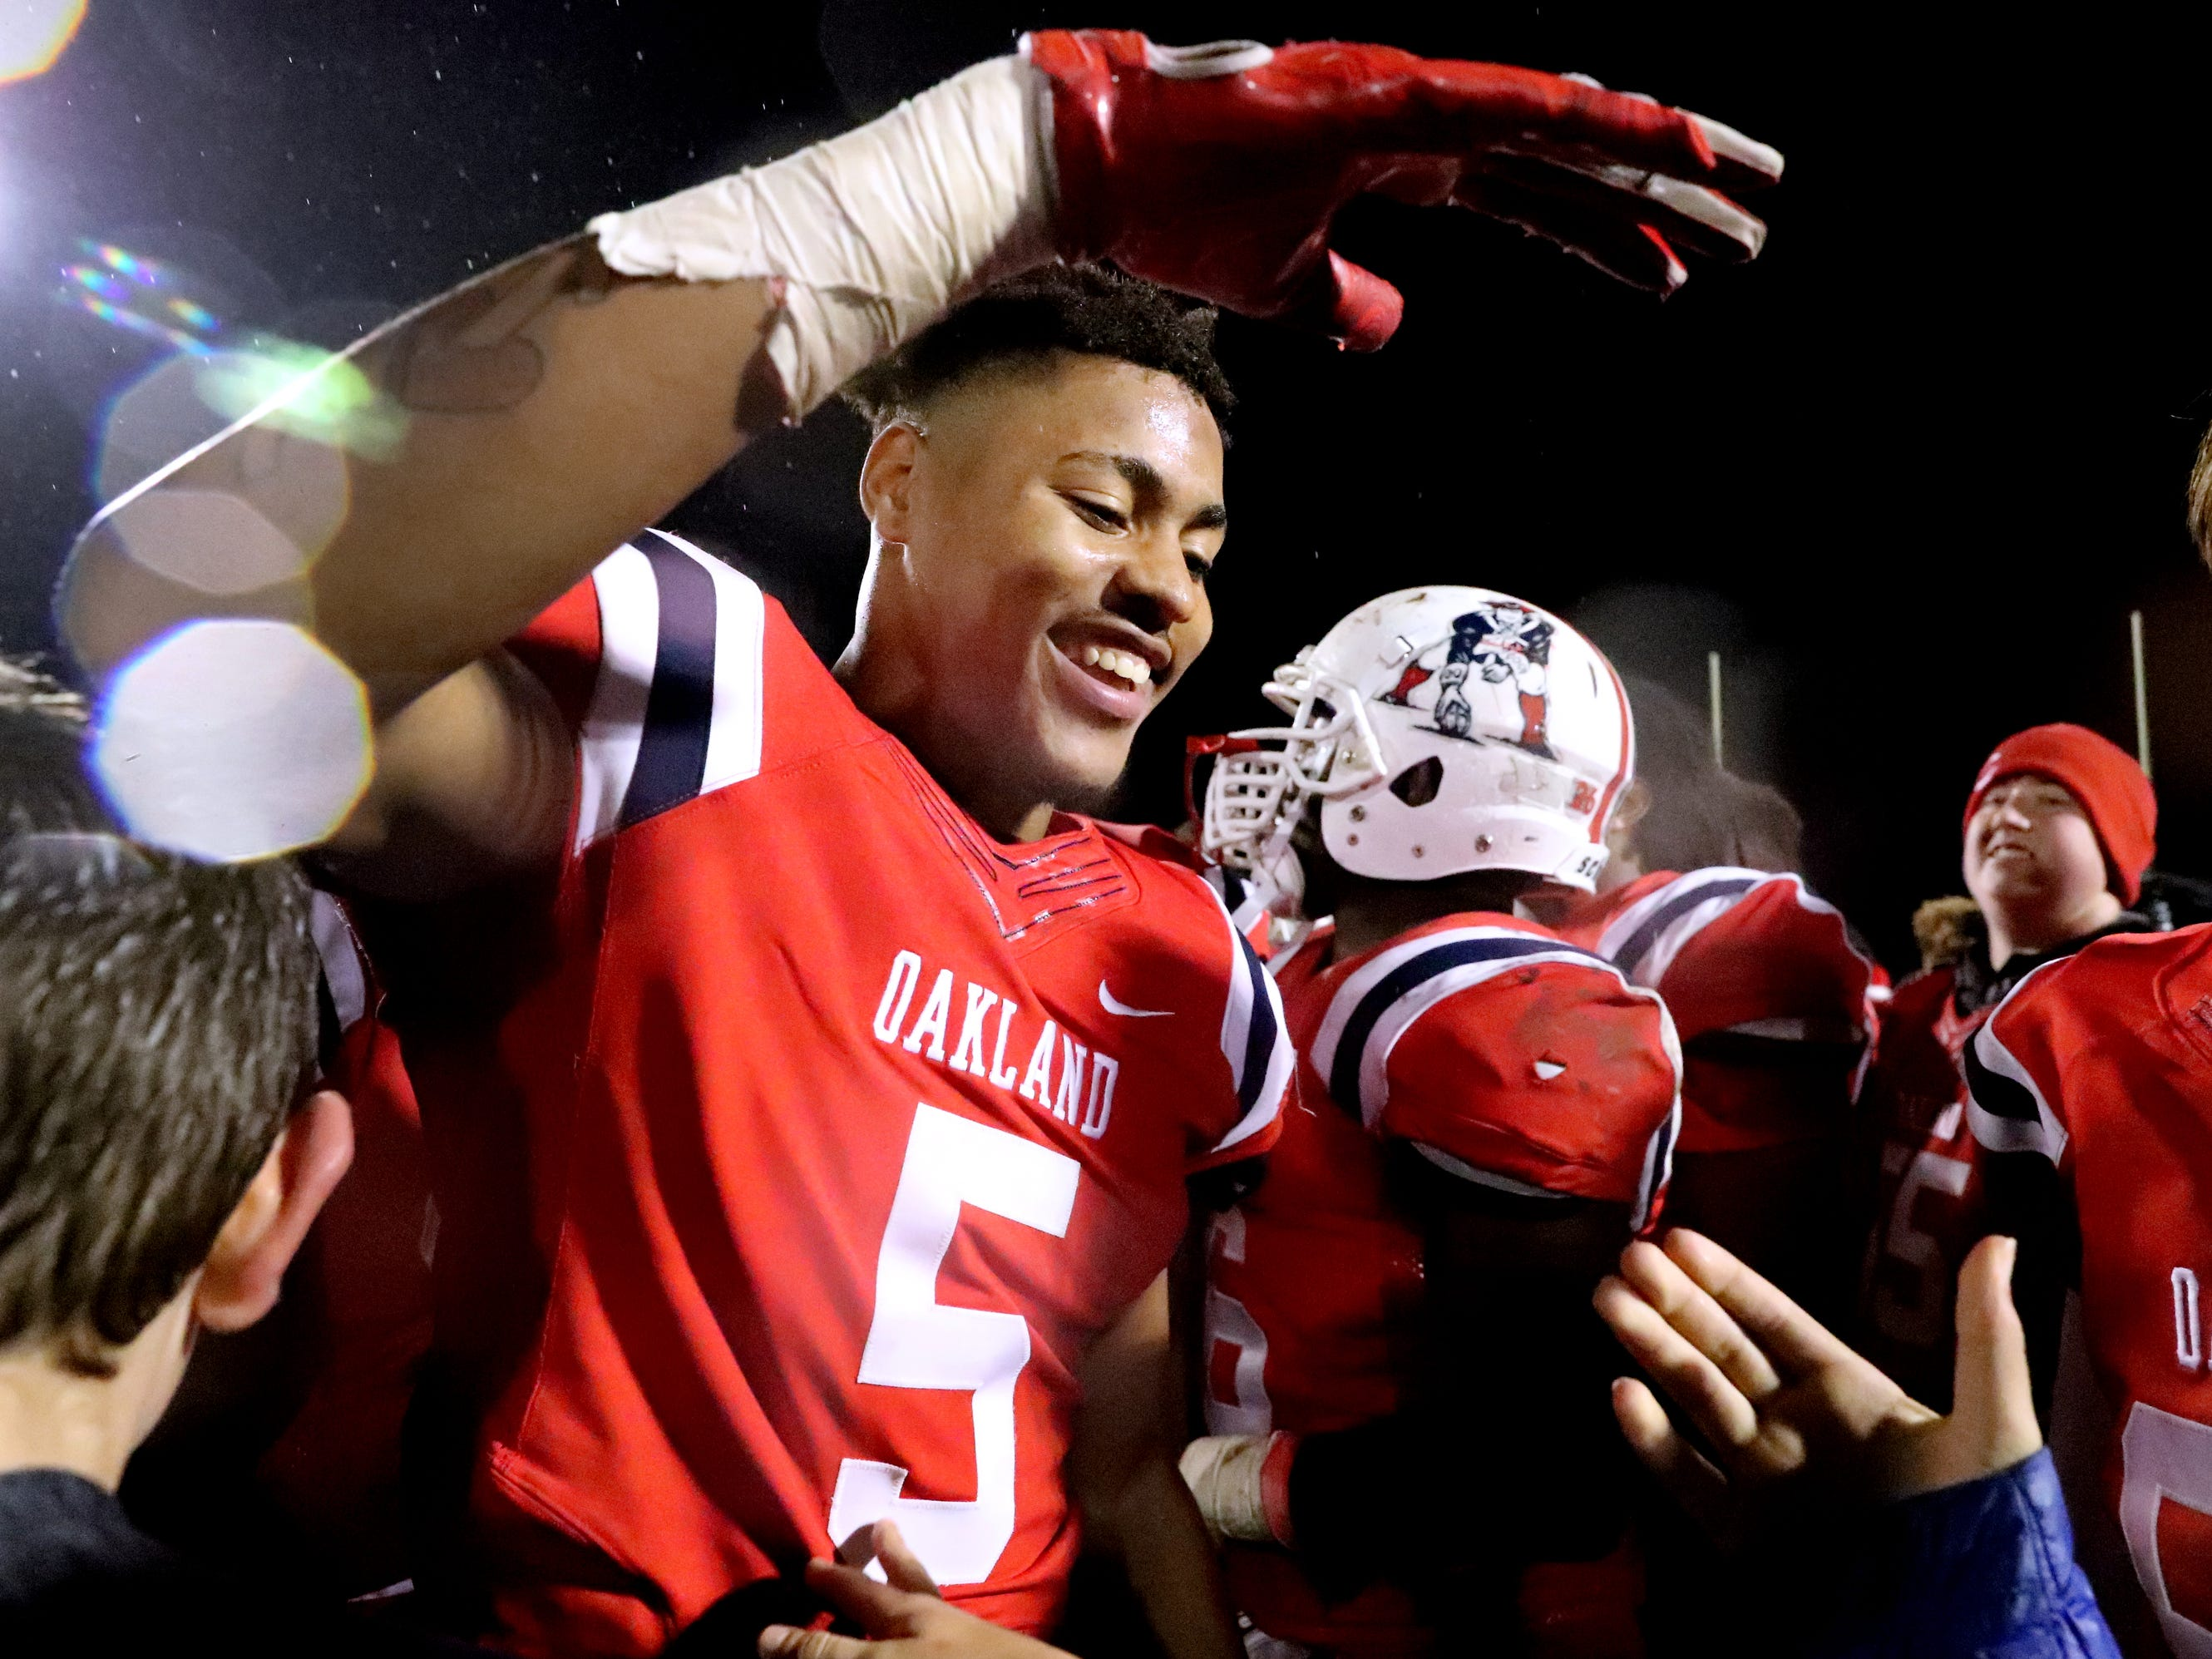 Oakland's Woodi Washington (5) celebrates beating Maryville 38-0 at Oakland in Murfreesboro, on Friday, Aug. 23 2018, during the 6A playoffs and advancing to the State Tournament next week.